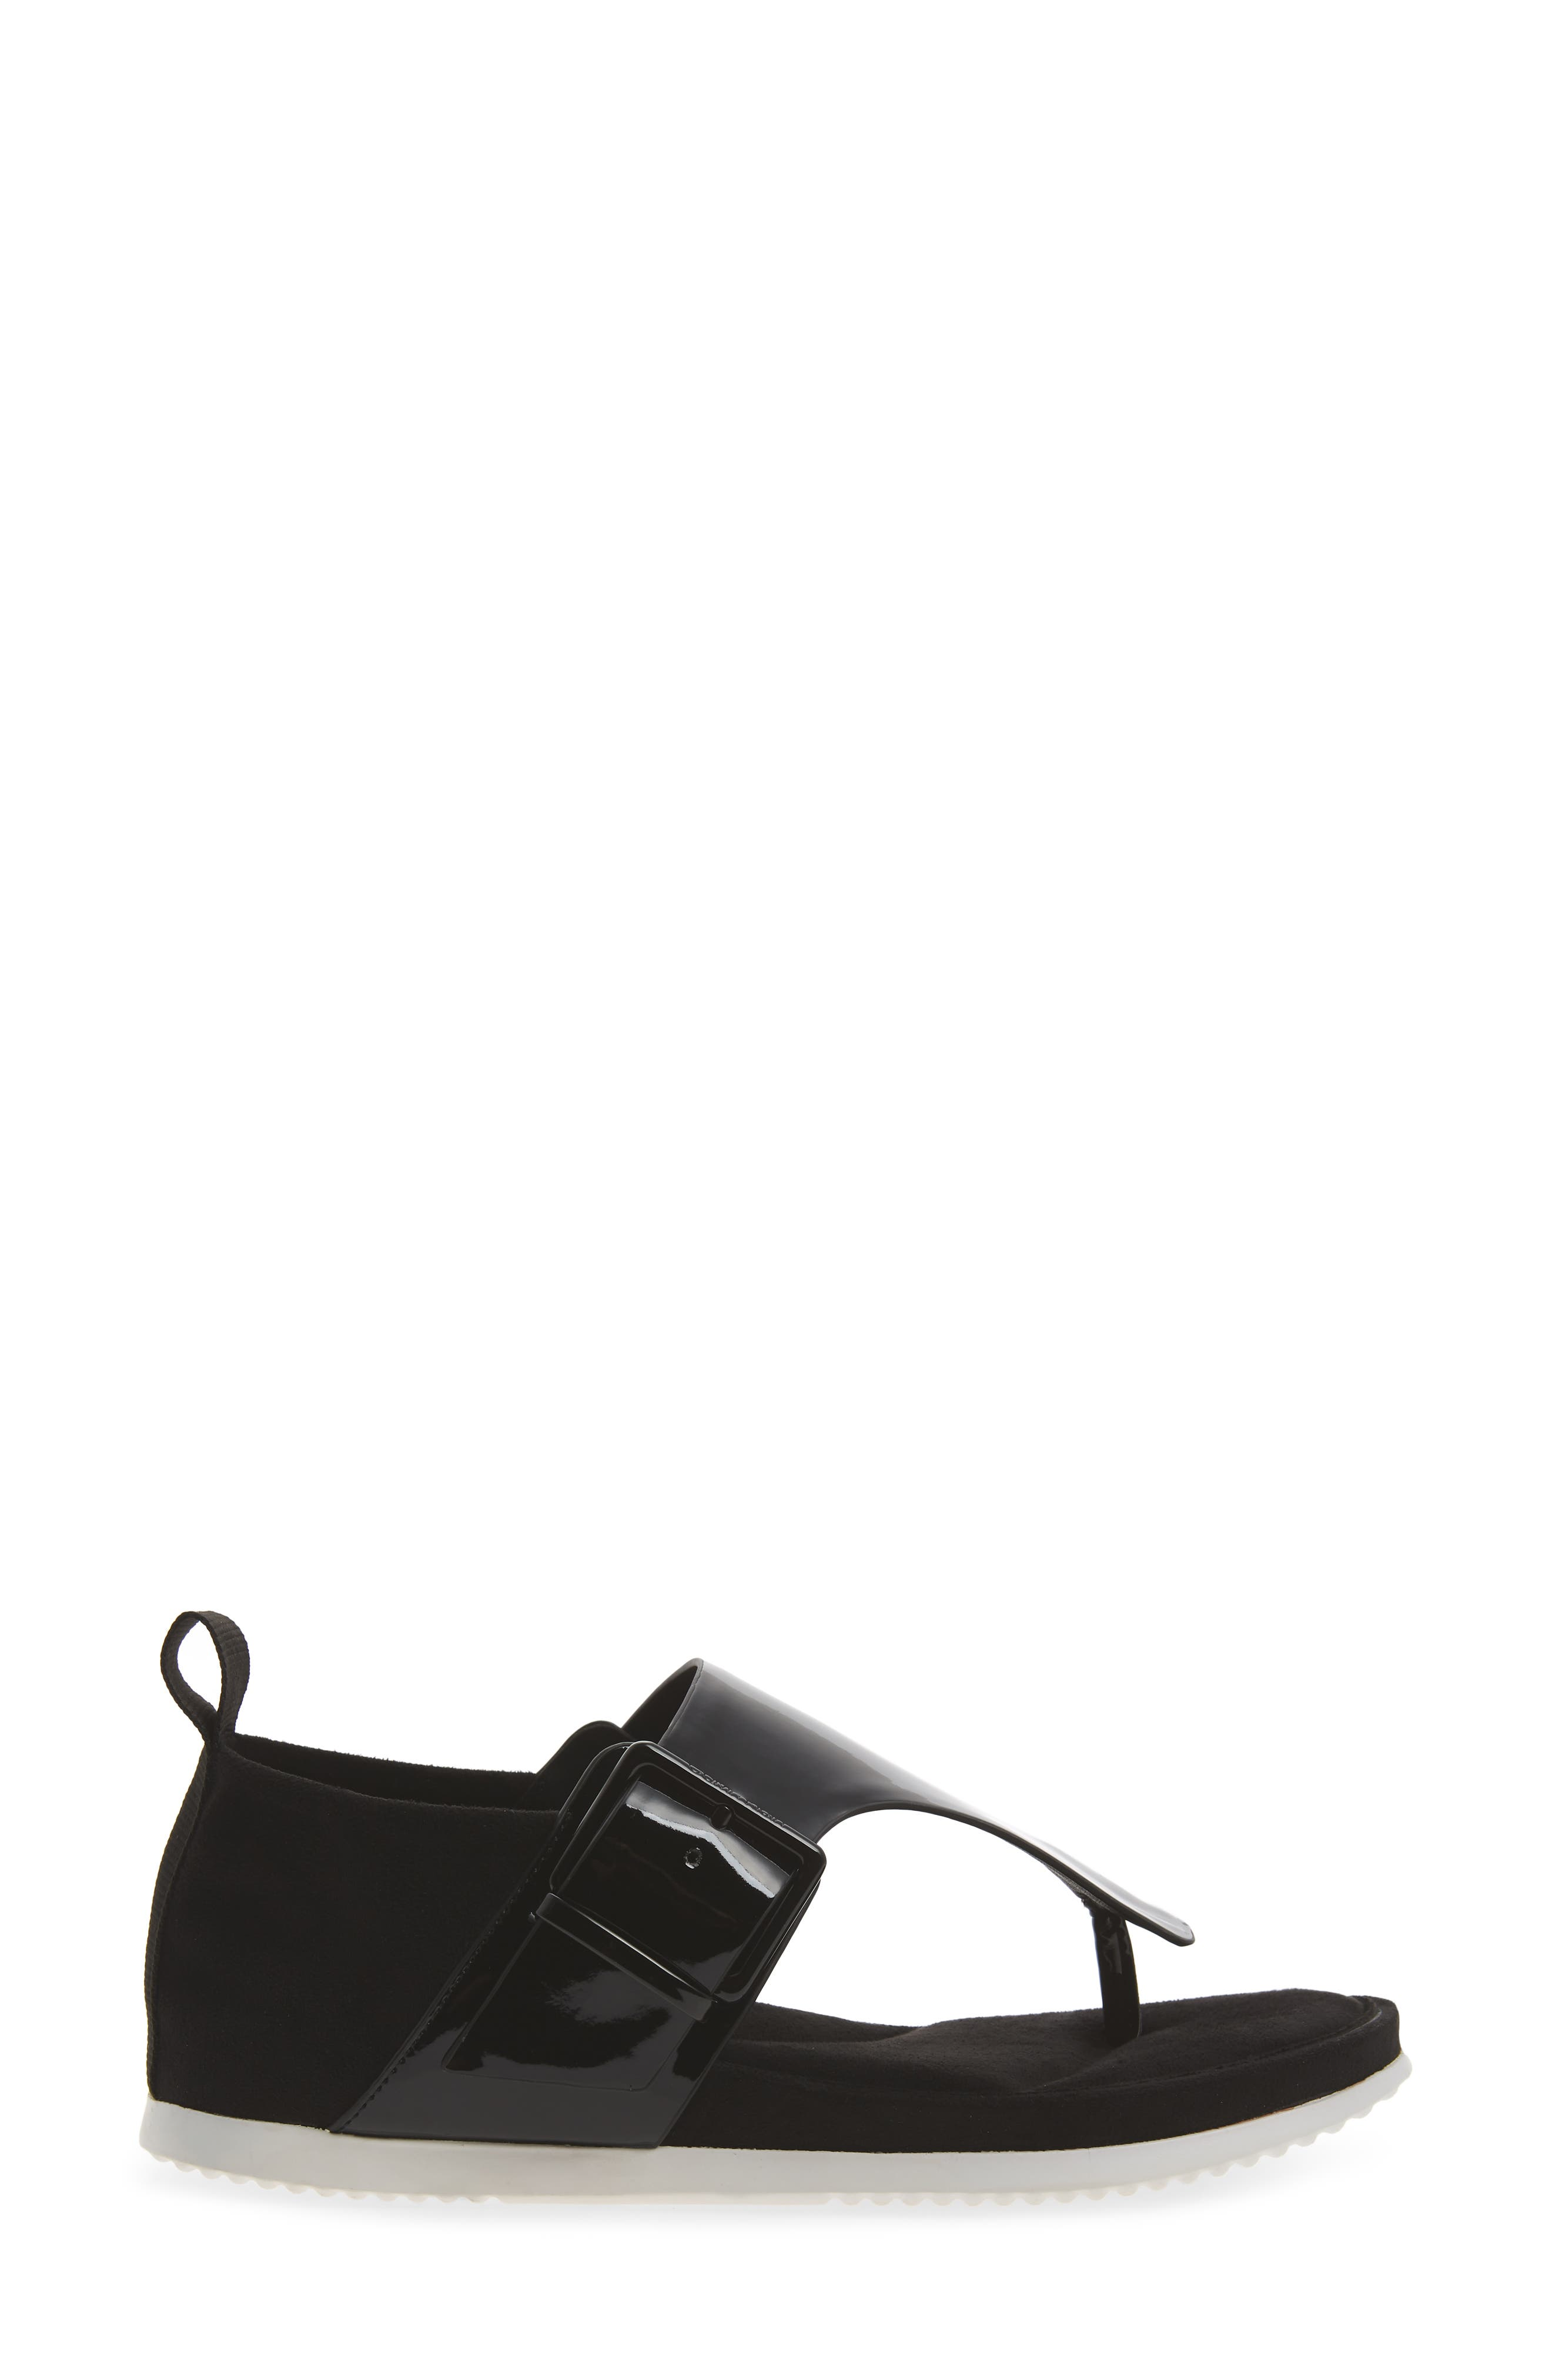 Dionay Wedge Sandal,                             Alternate thumbnail 3, color,                             Black Patent